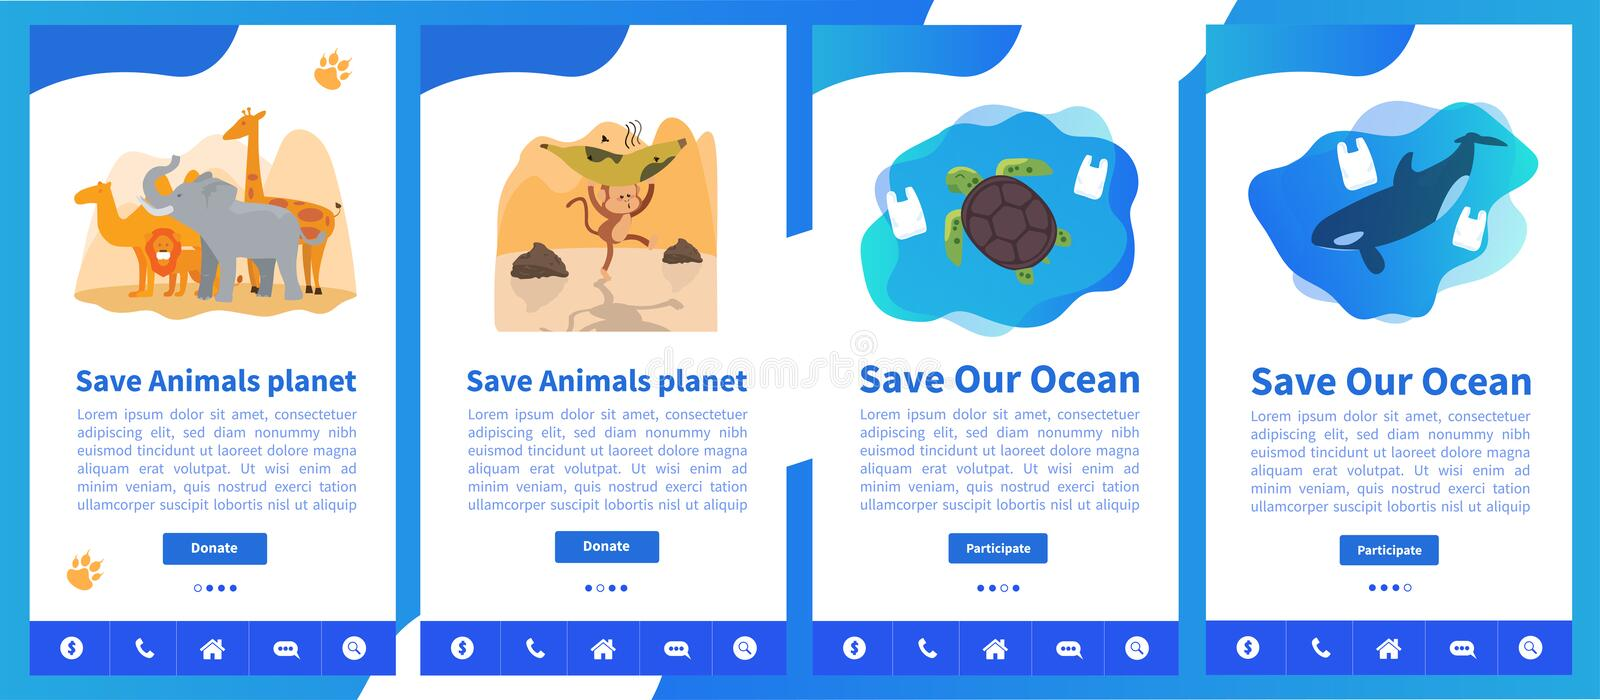 Web page design templates collection of Save Planet or Go green themes. Modern vector illustration concepts for website and mobile website development. Save vector illustration